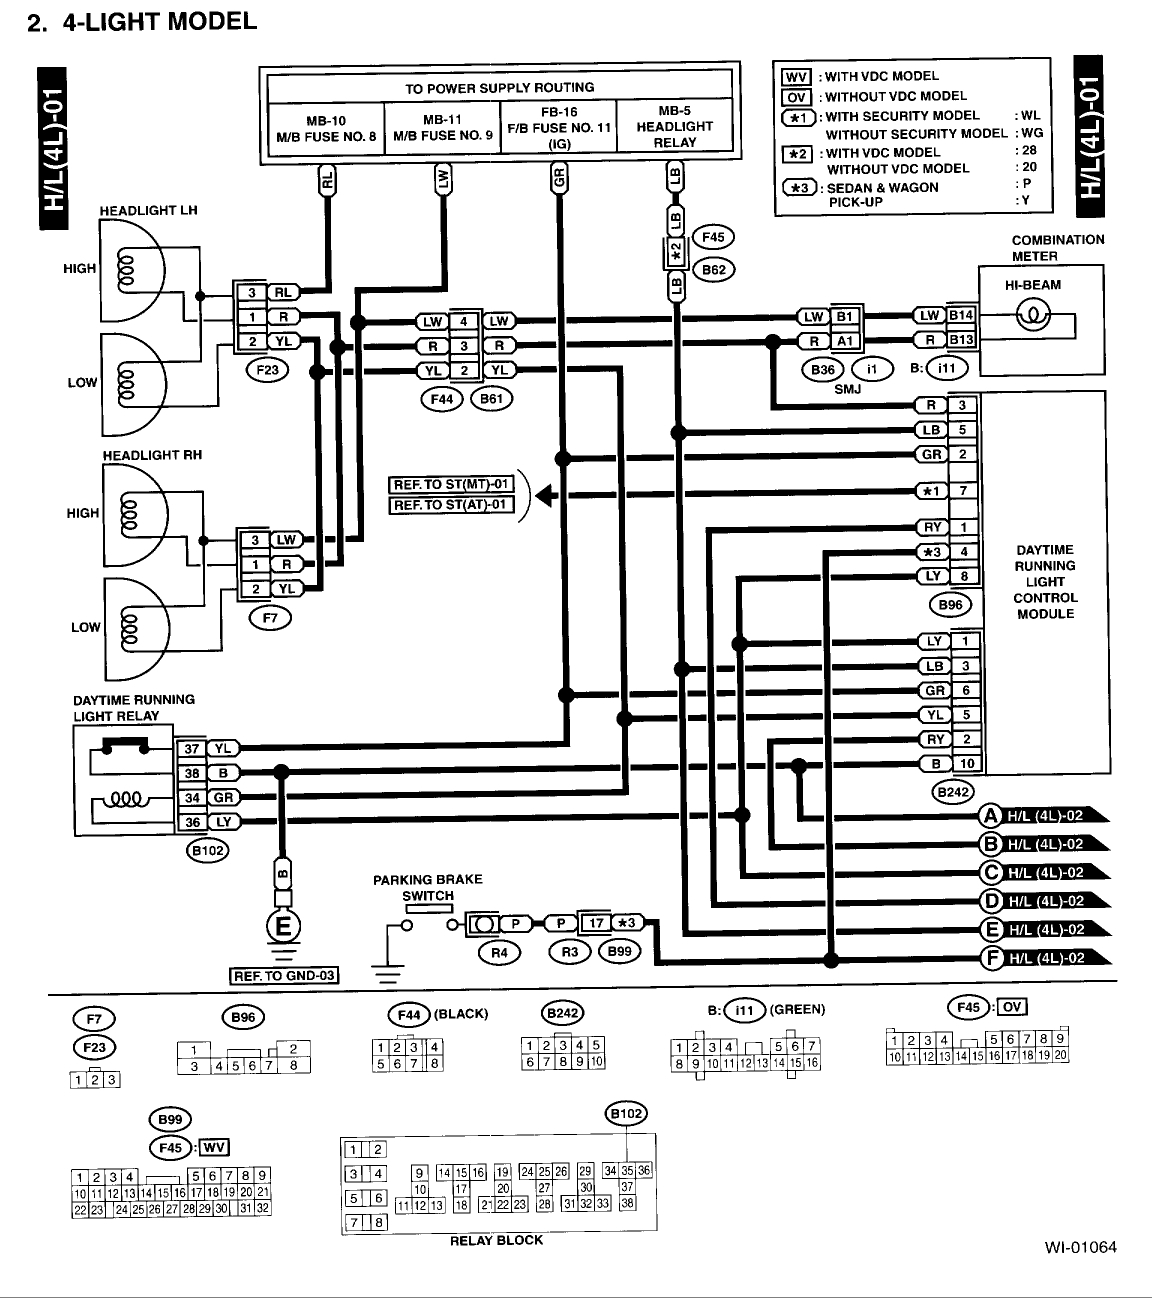 hight resolution of subaru wrx engine diagram wiring diagram datasource 2015 wrx engine diagram